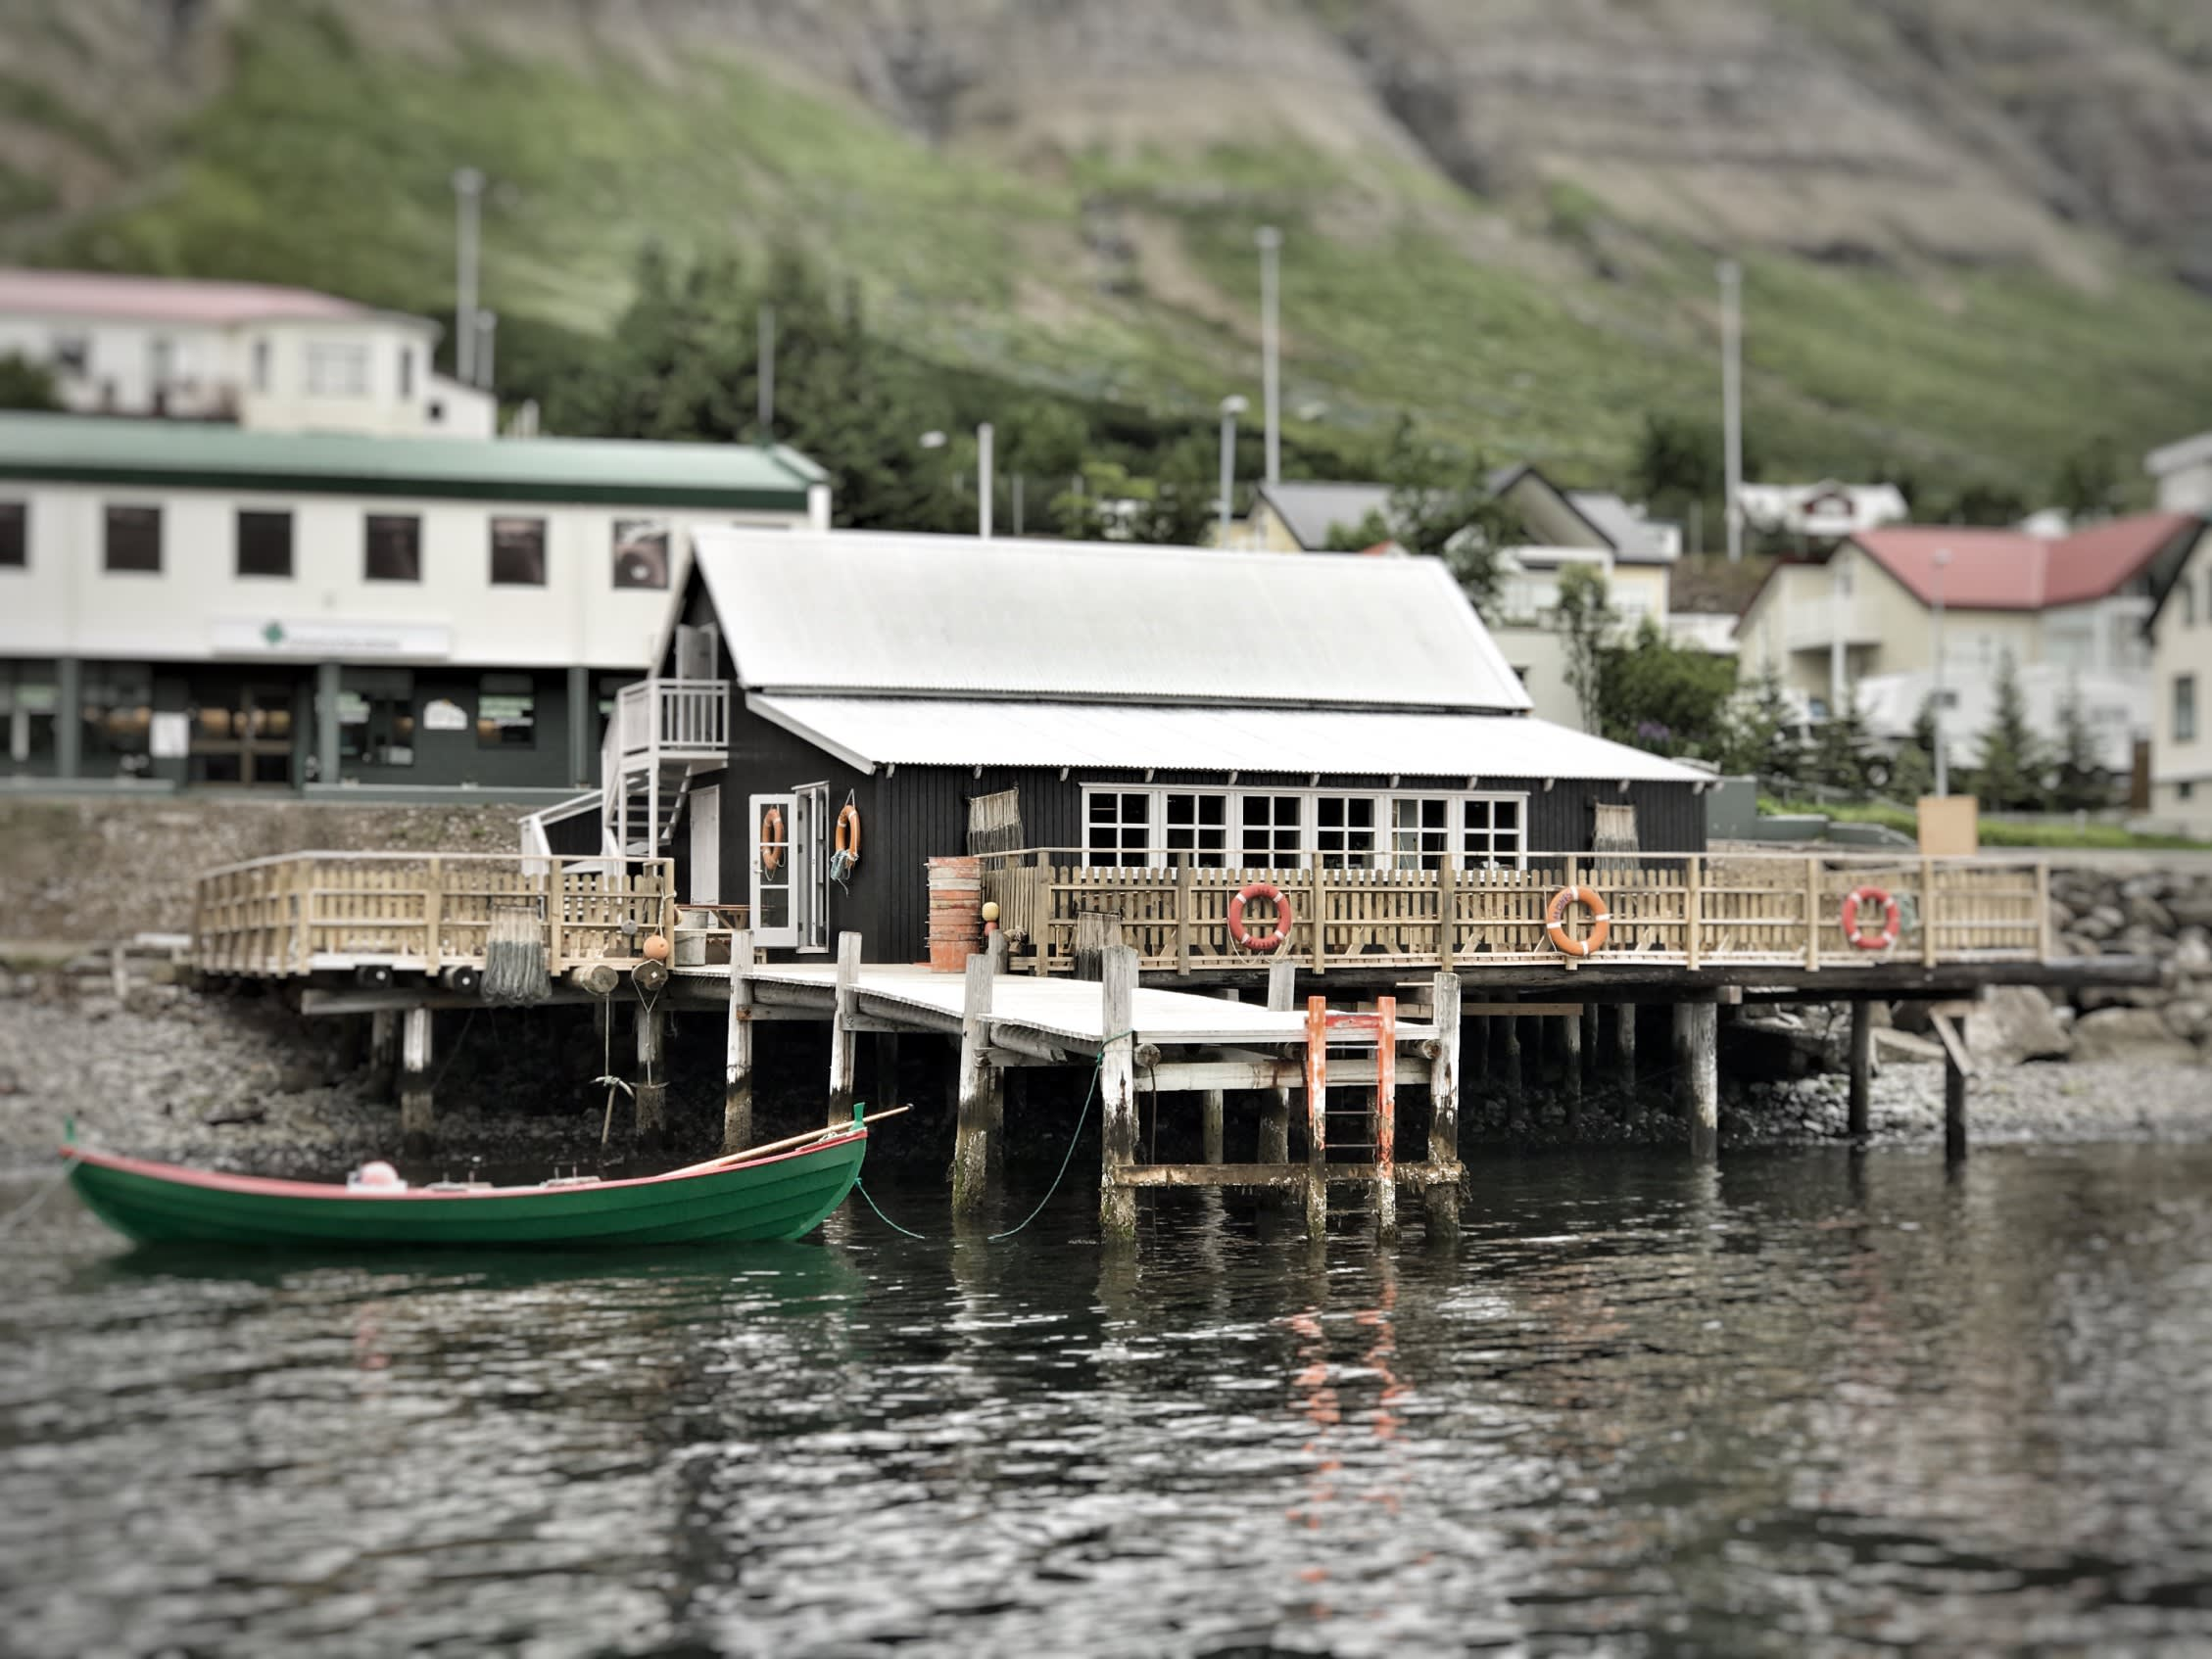 The Bait Shack, a black nautically decorated building, pictured here from the sea side